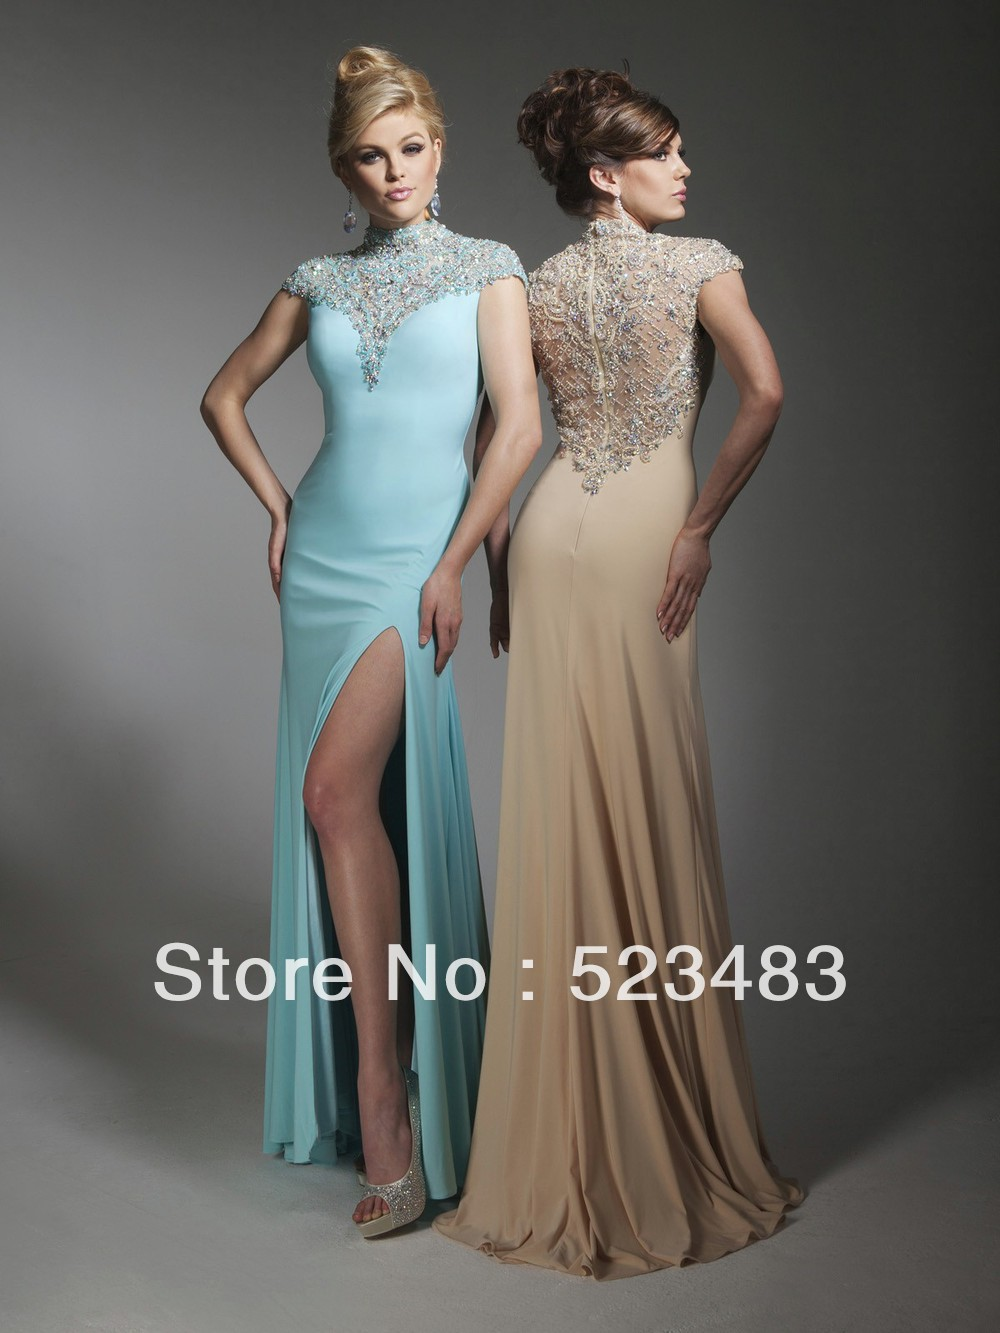 Wholesale luxury classy cap sleeves classy pink evening for Wedding and evening dresses